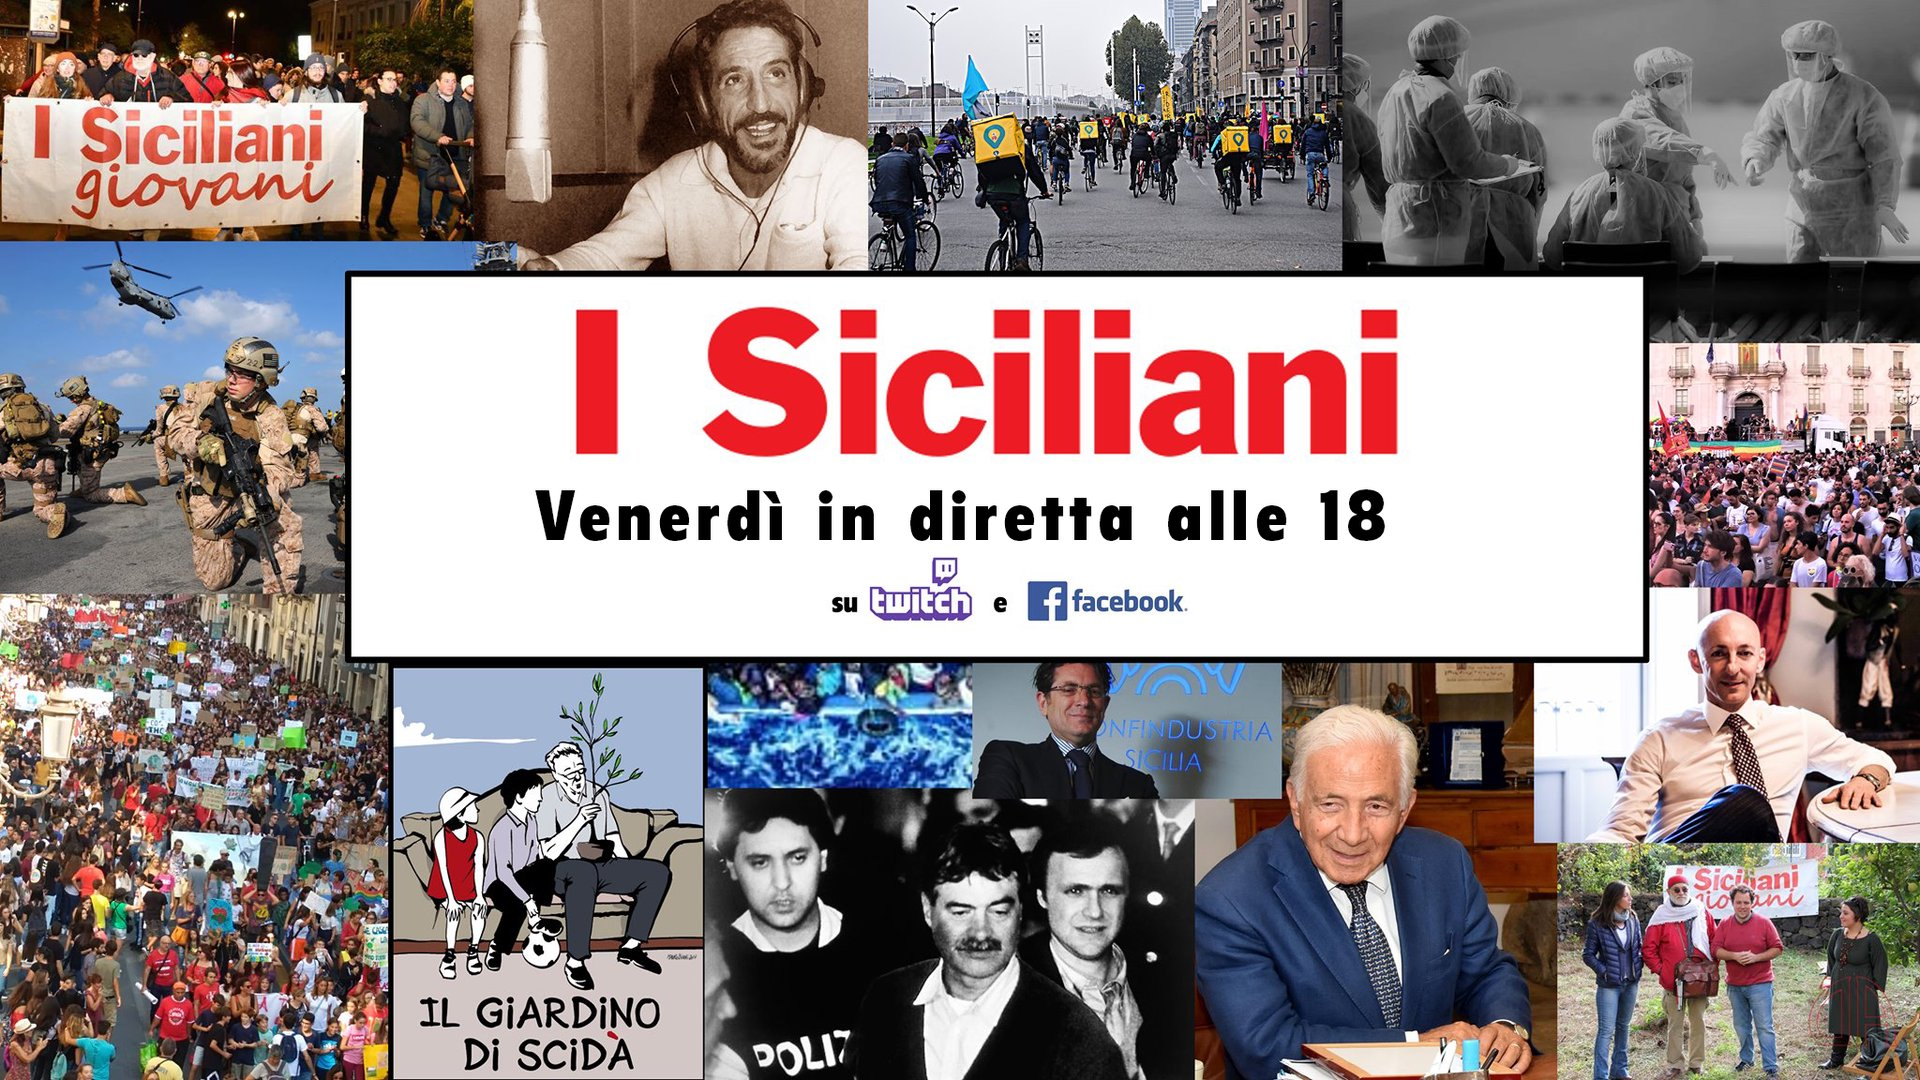 Twitch stream of ISicilianiGiovani